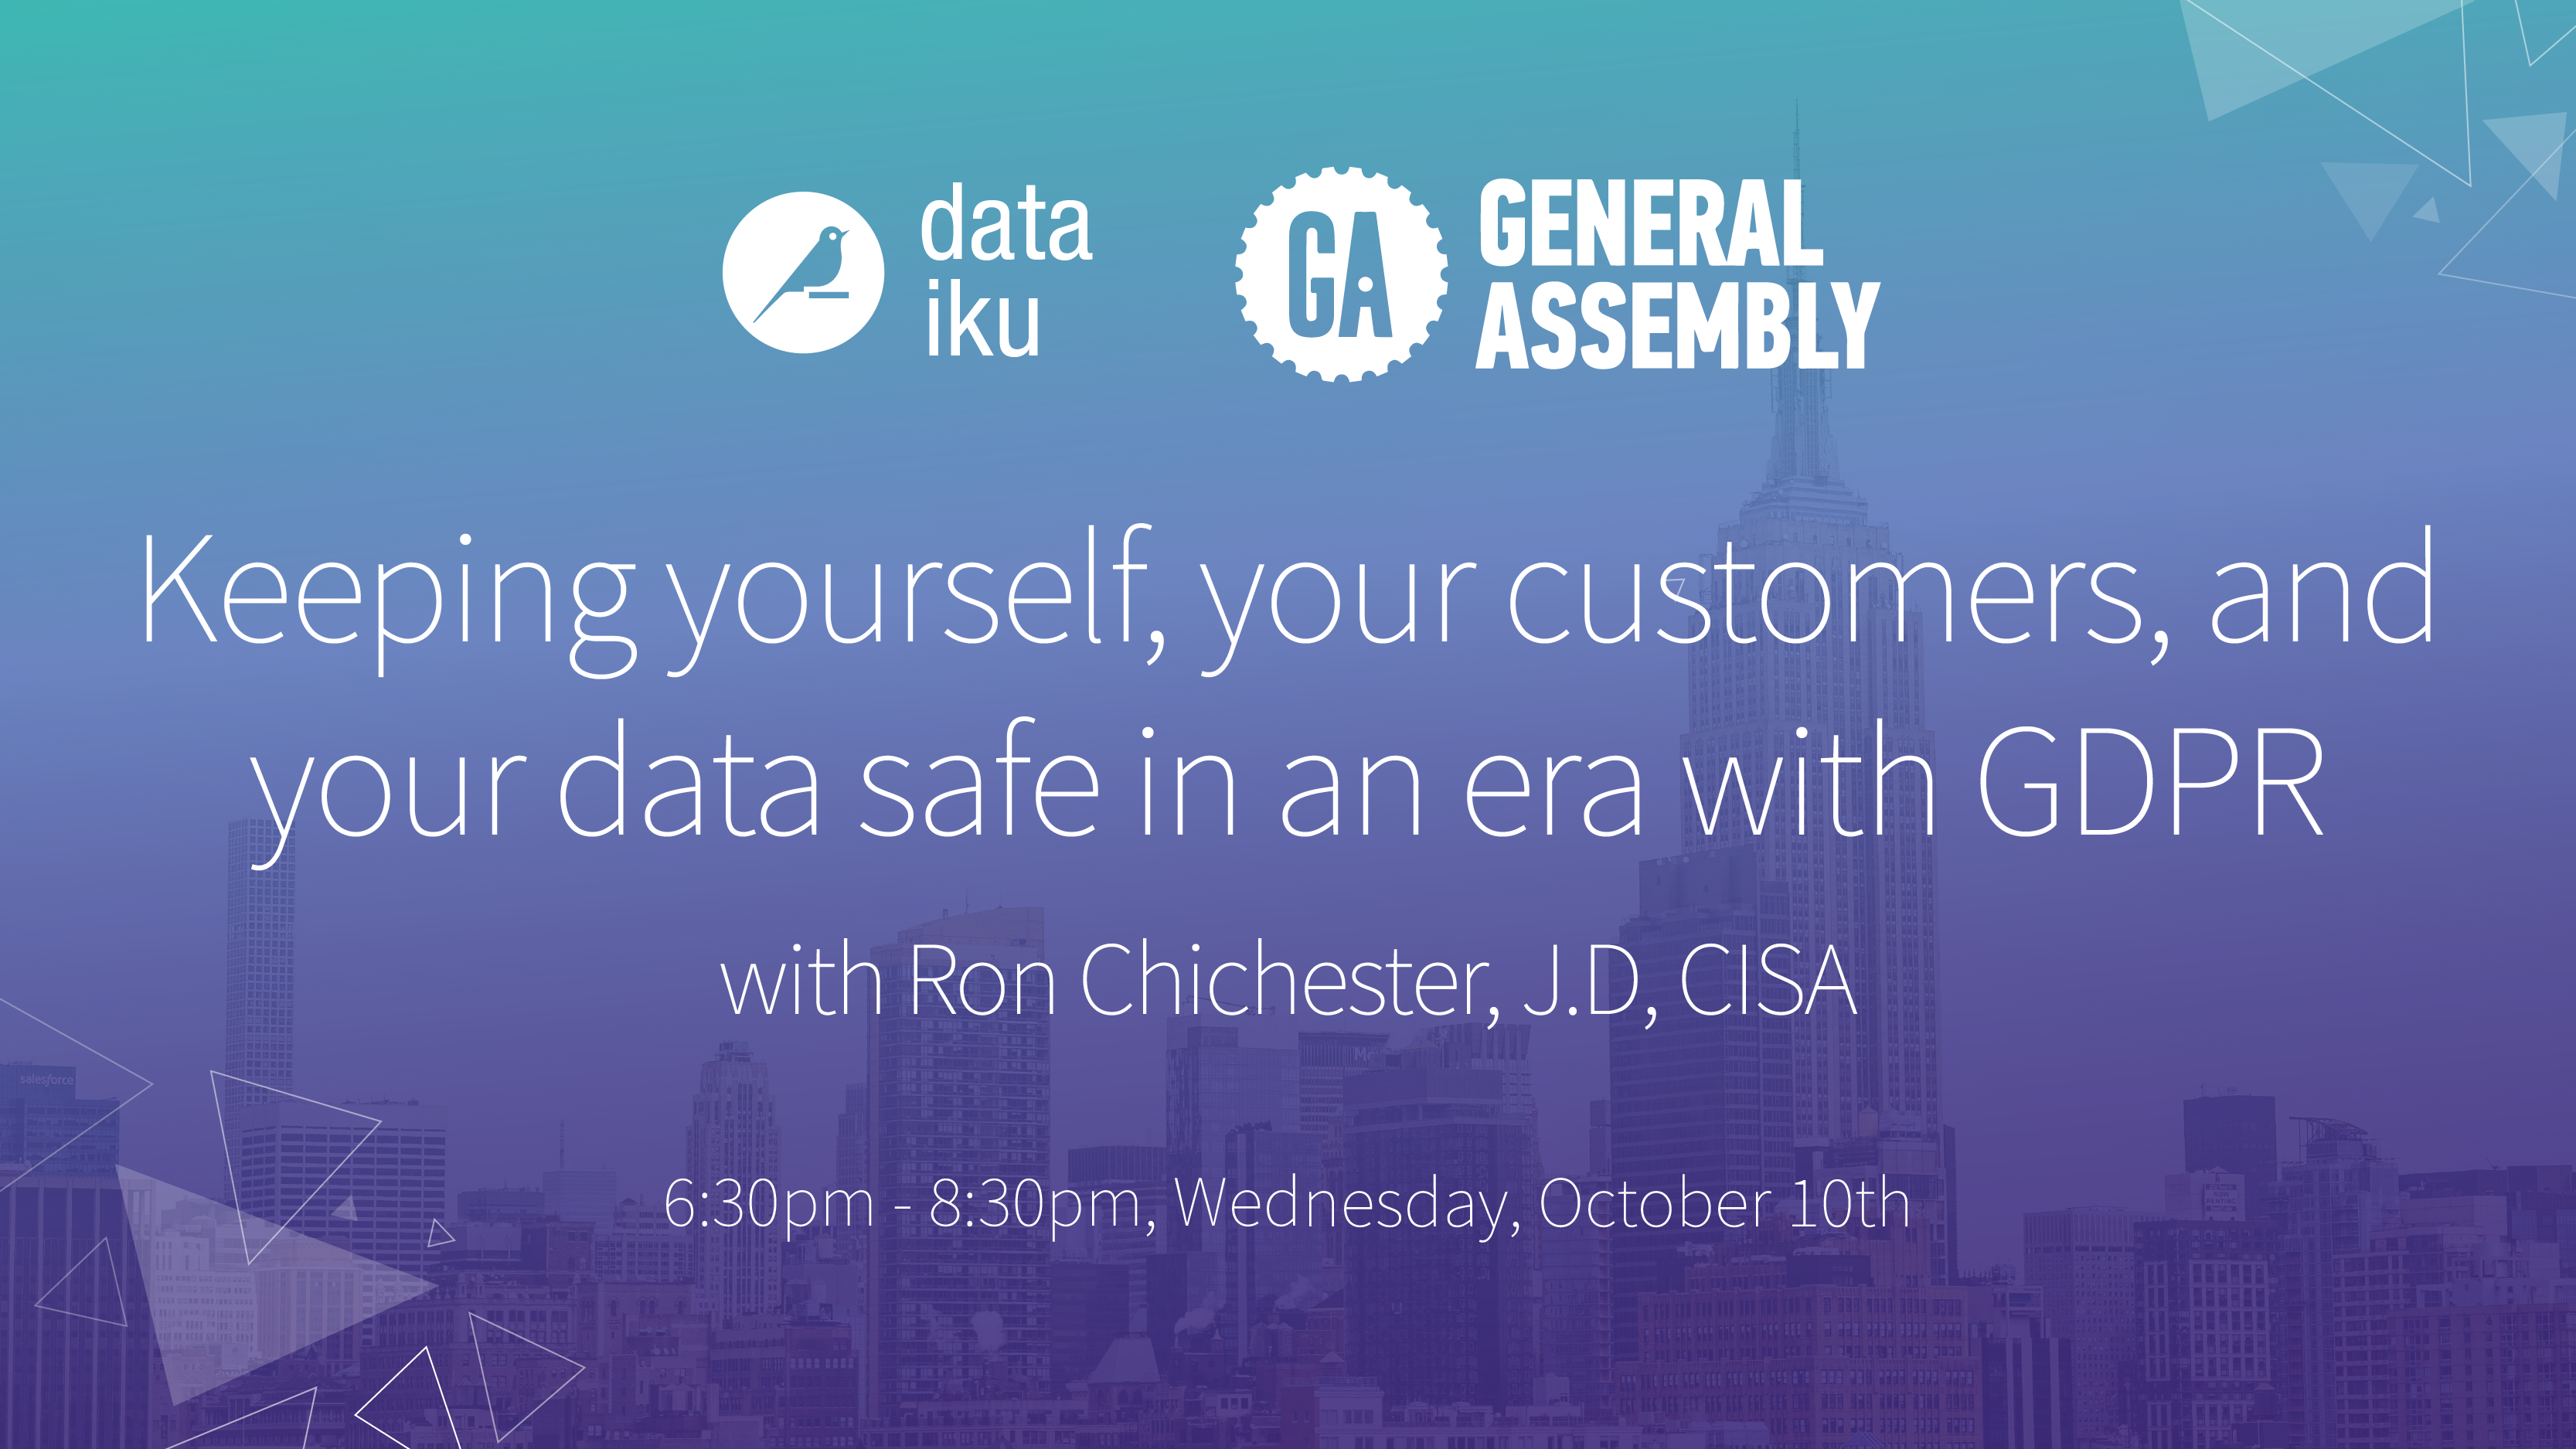 Keeping yourself, your customers, and your data safe in an era with GDPR